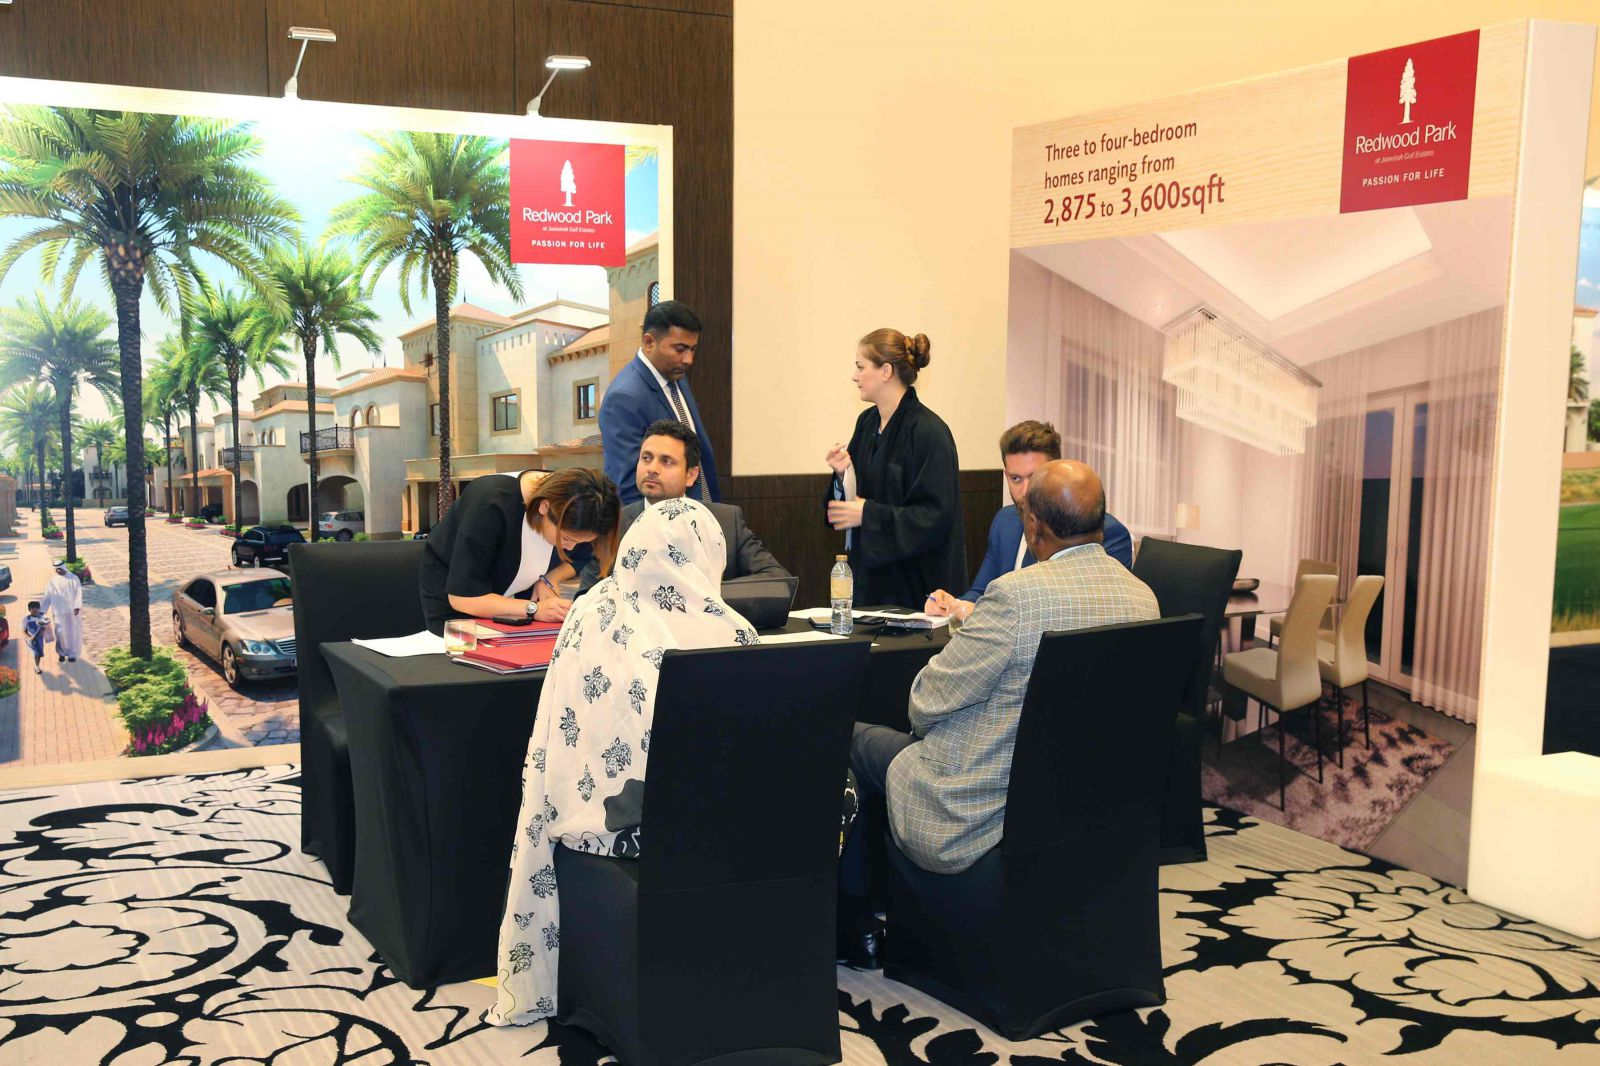 Jumeirah Golf Estates partners with Abu Dhabi Islamic Bank to promote its award-winning homes